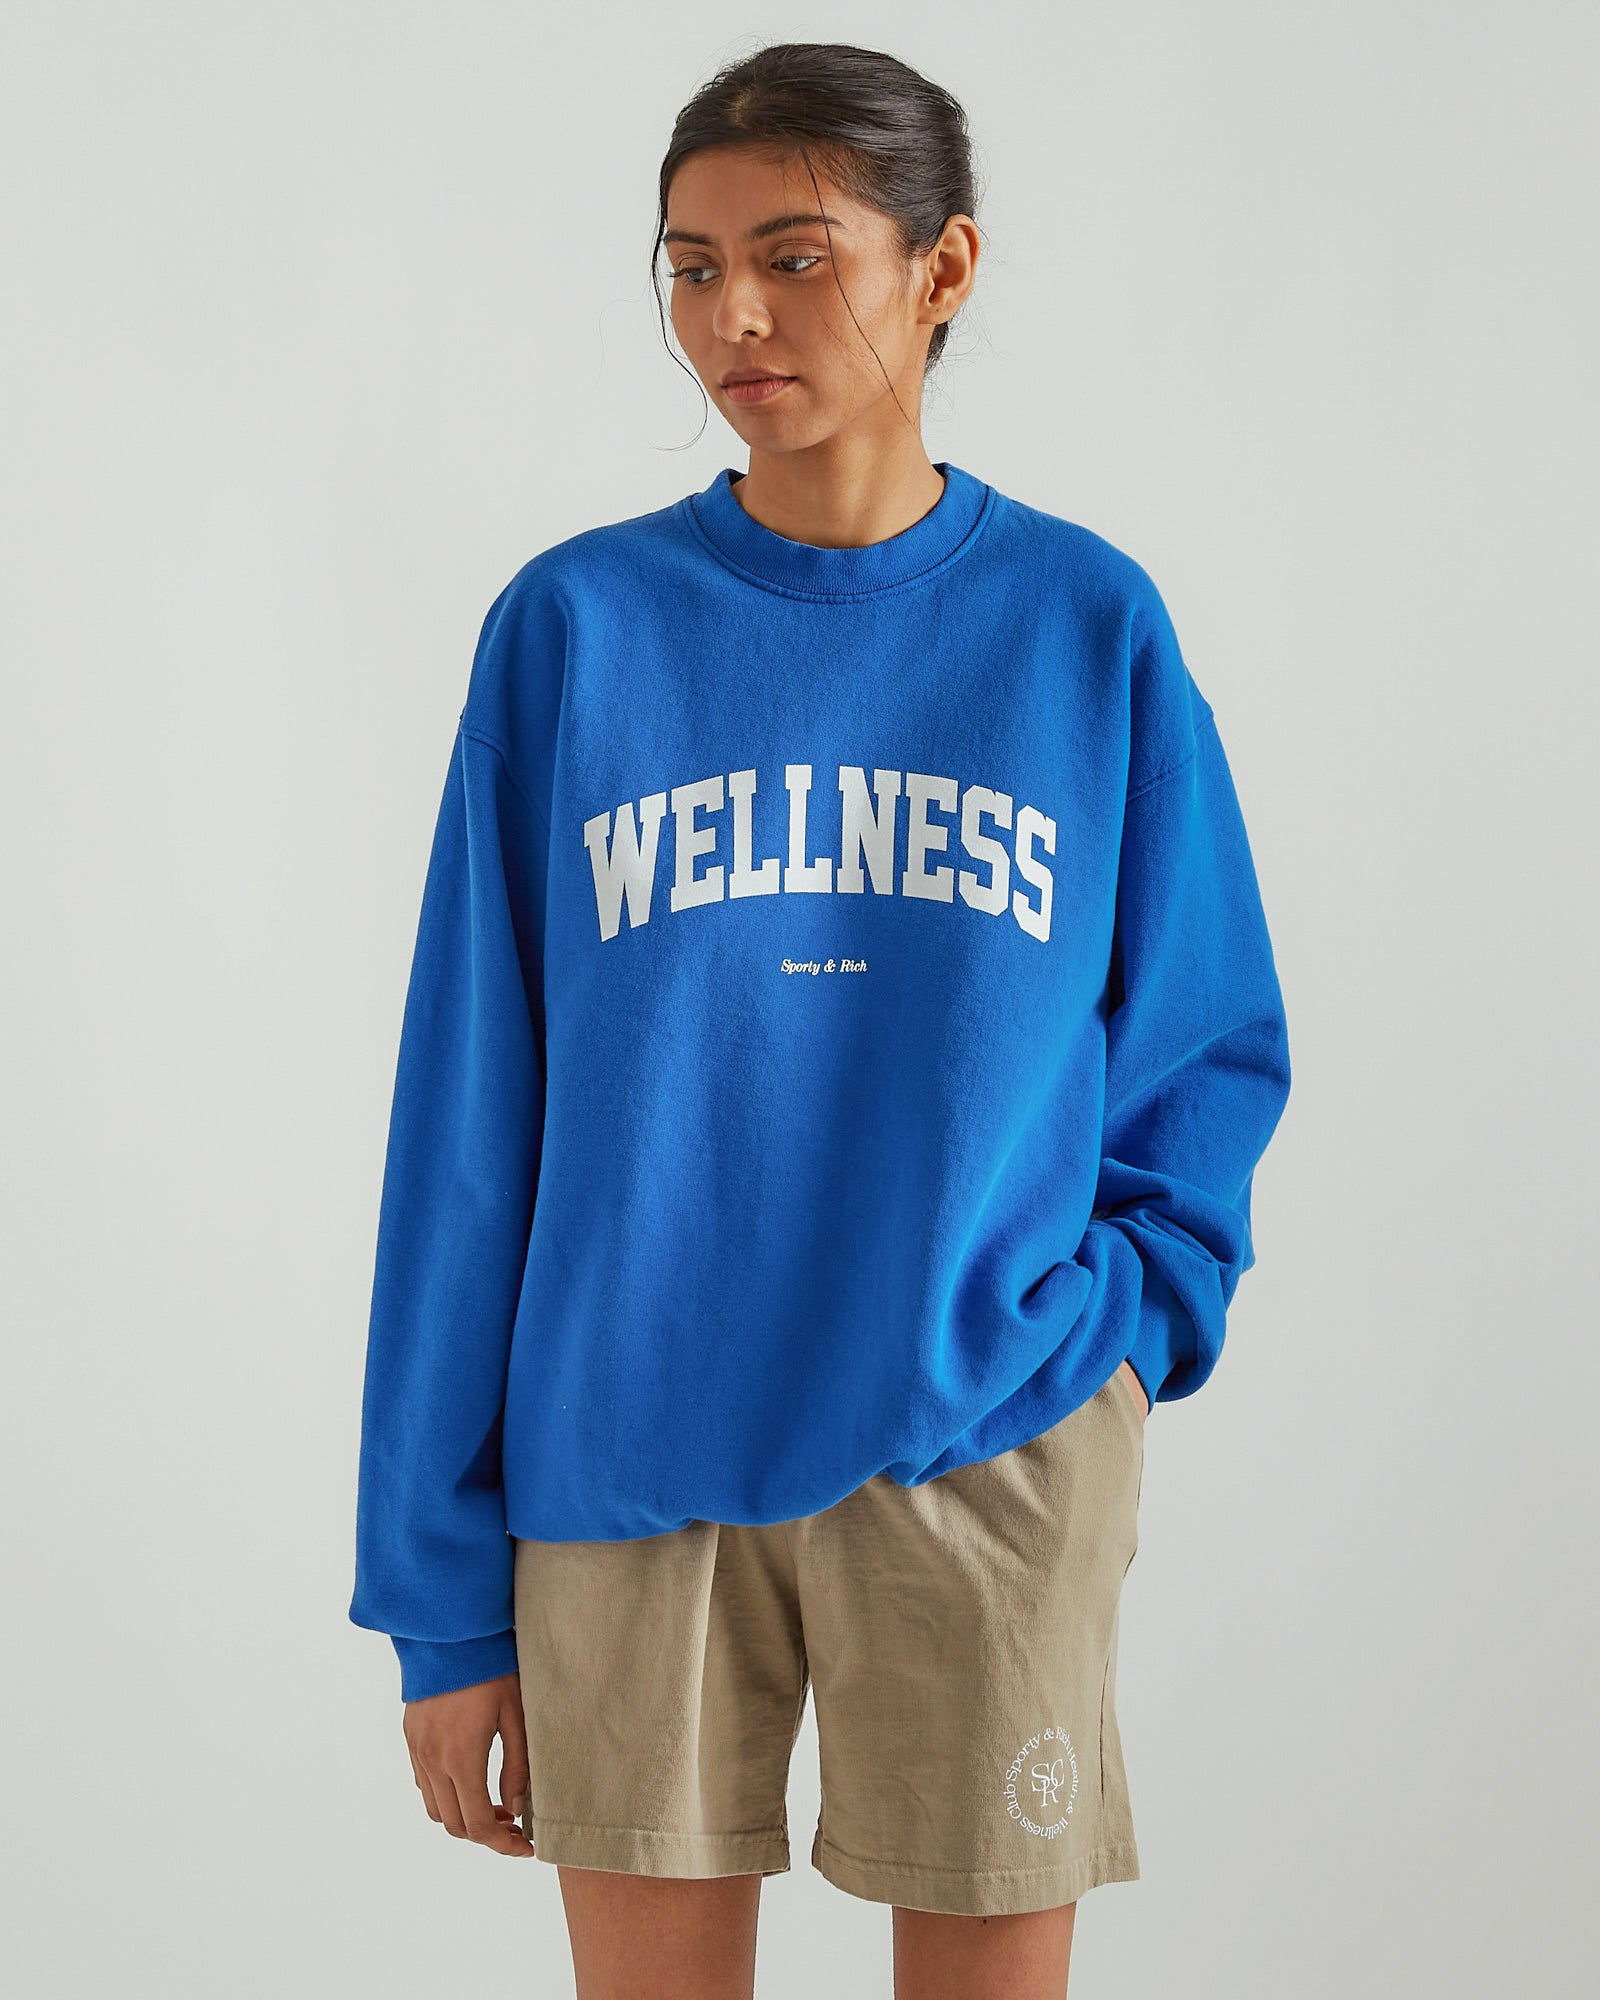 Wellness Ivy Crewneck in Princess Blue